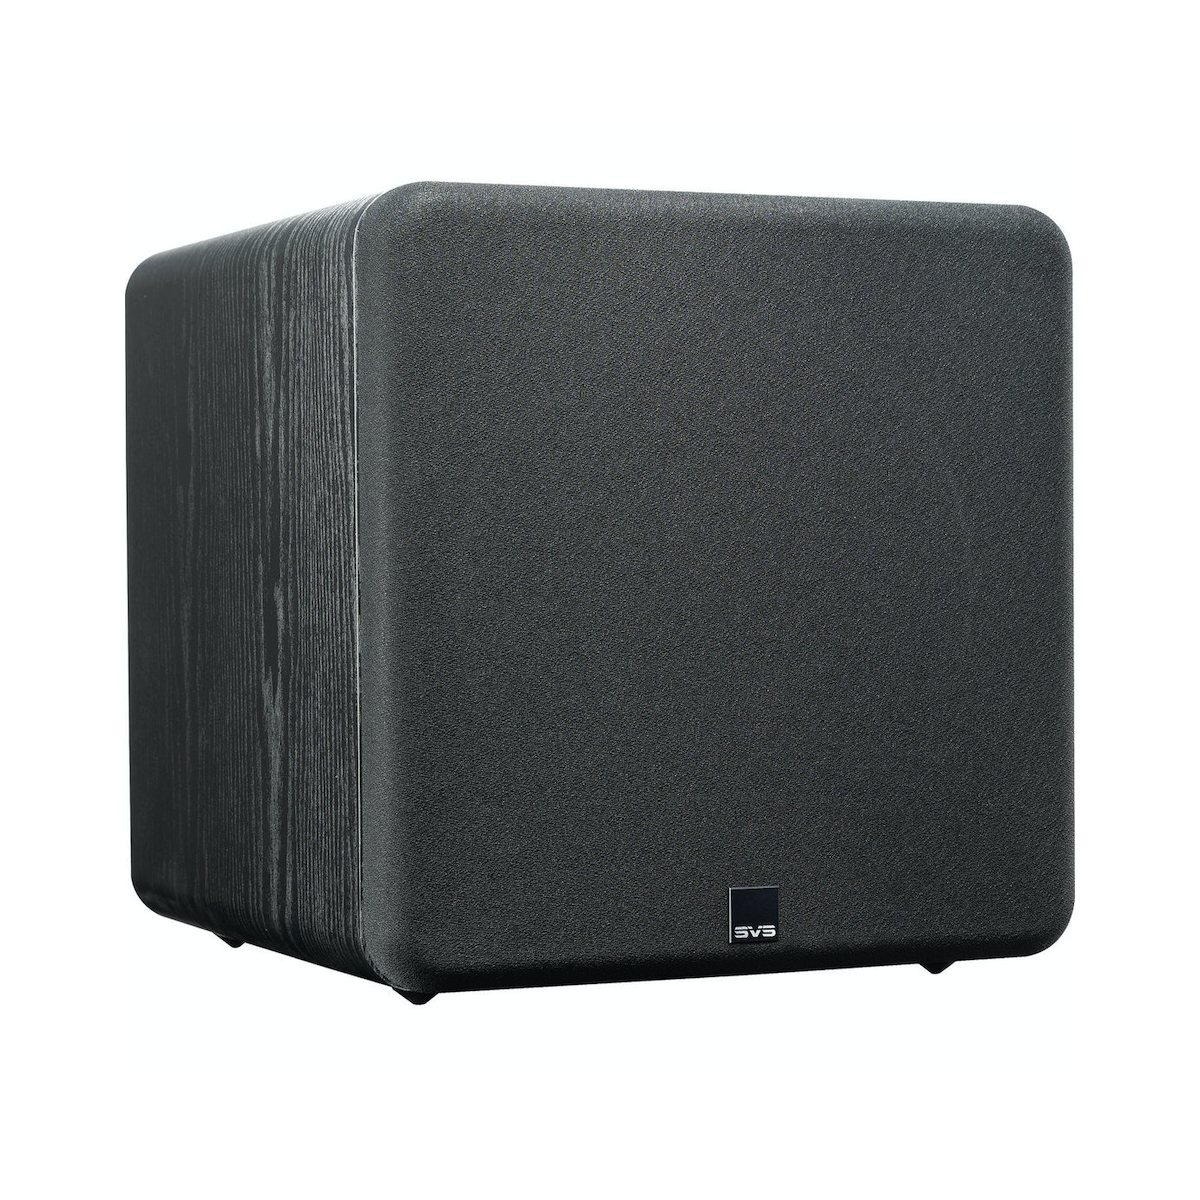 SVS Sound SB-2000 Pro - Subwoofer (Black Ash), SVS Sound, Subwoofer - AVStore.in